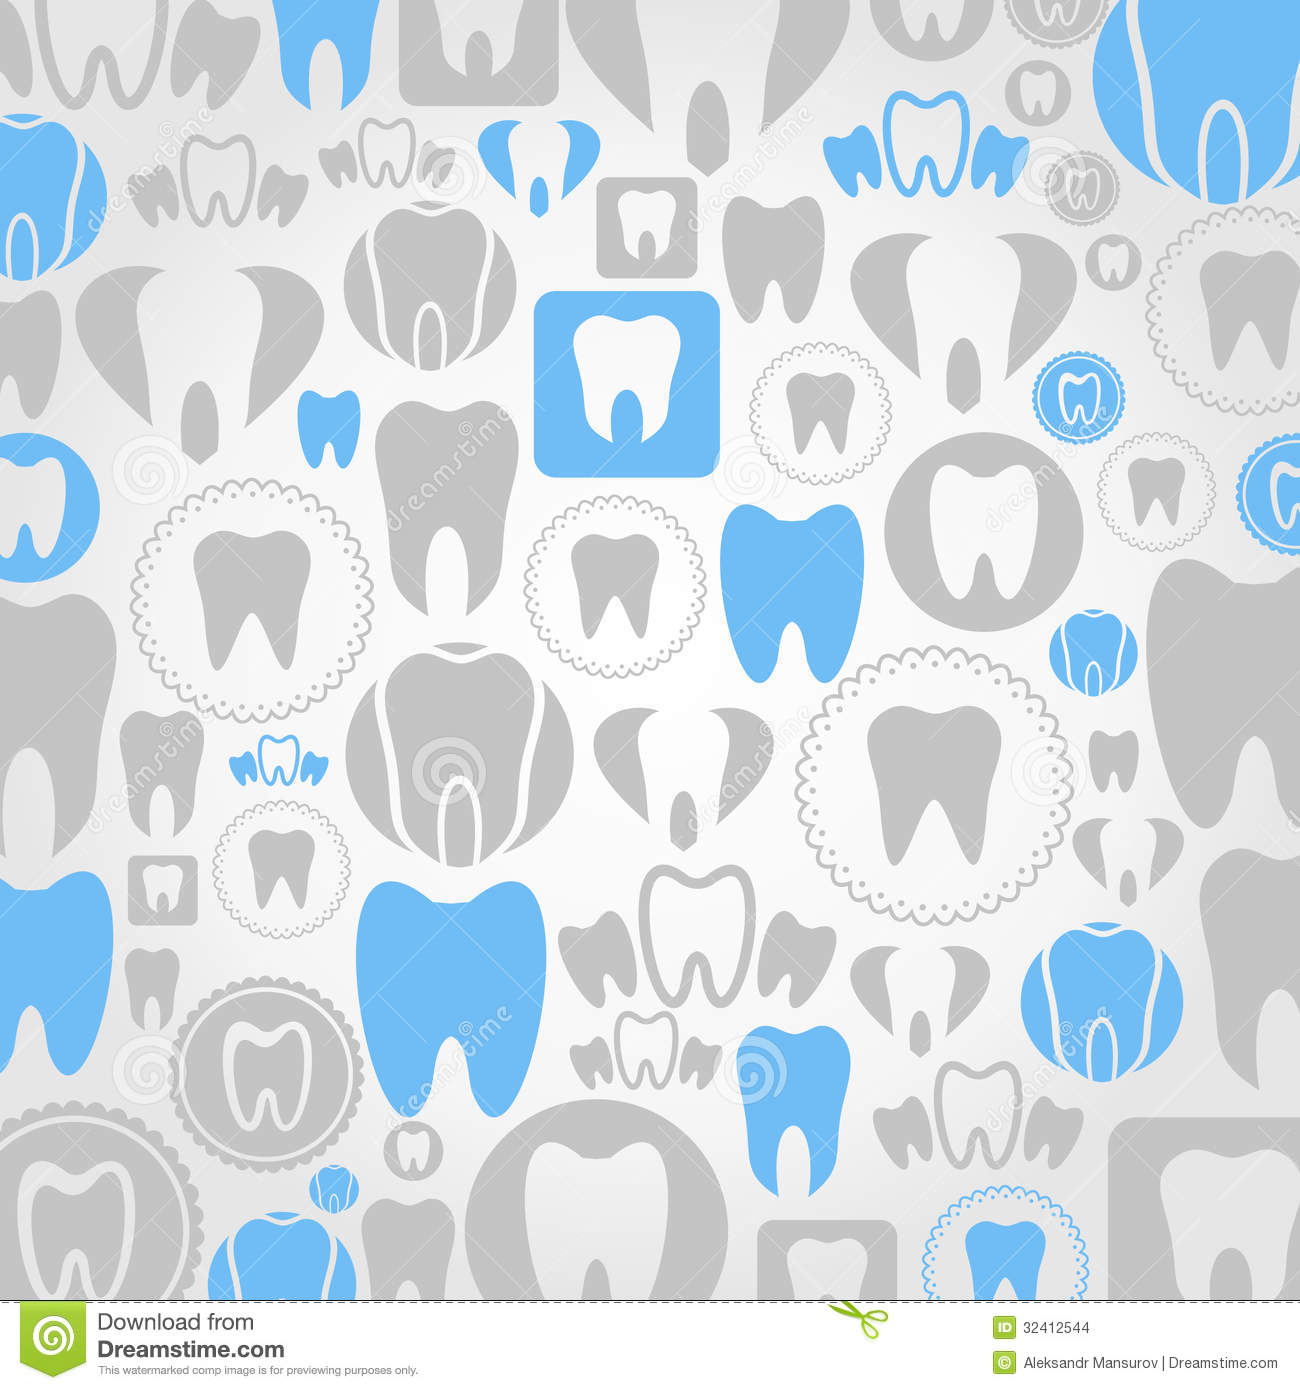 Free Cute Fall Wallpapers Tooth A Background Stock Vector Illustration Of Image